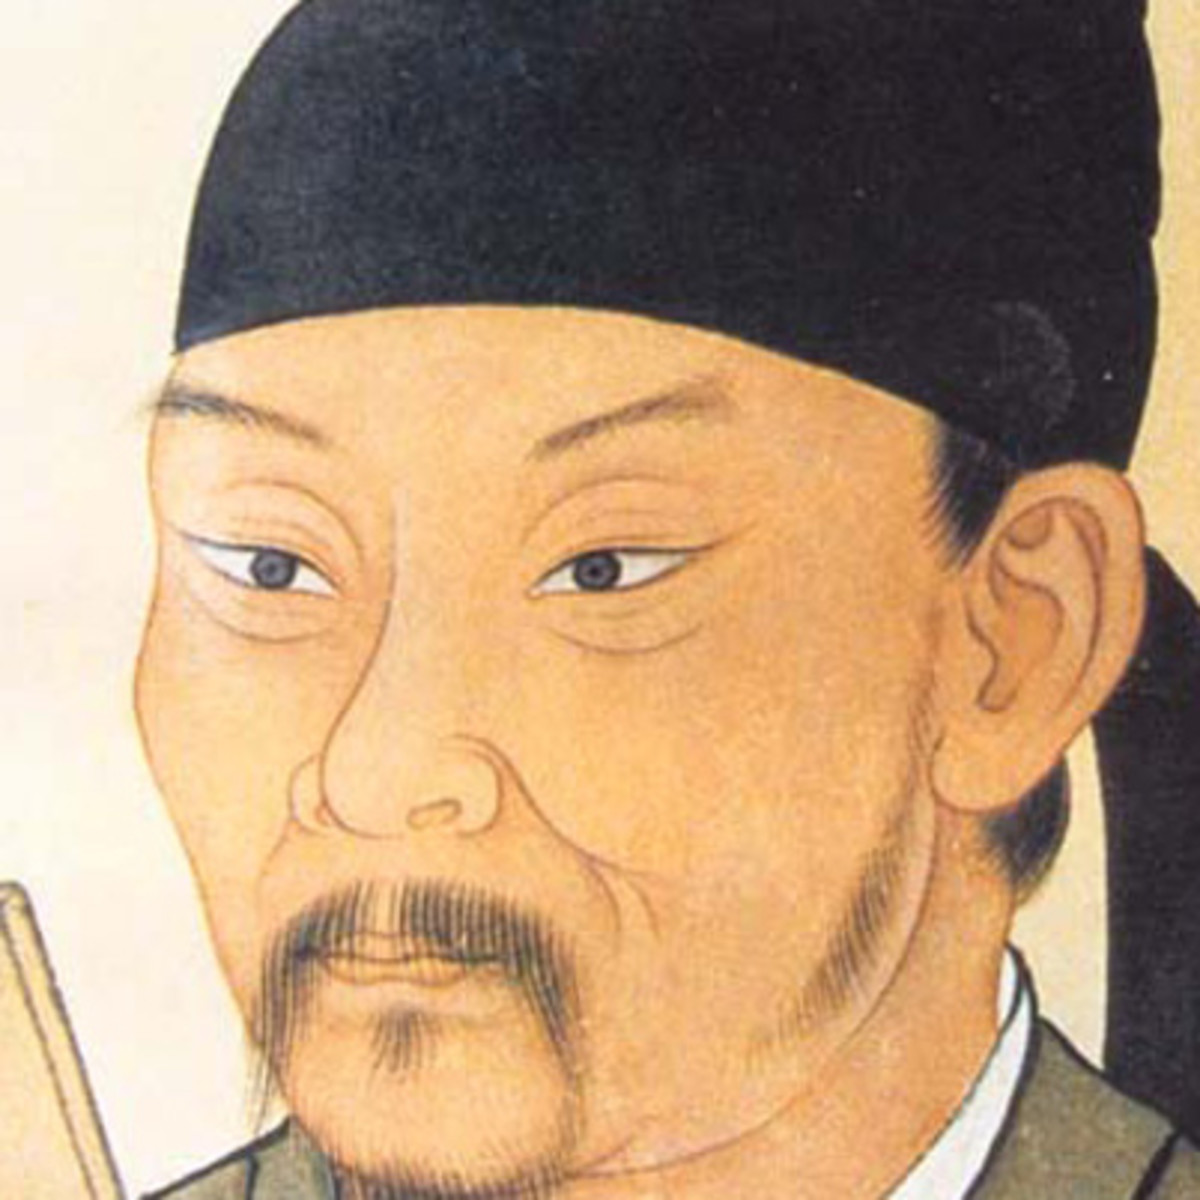 an analysis of tu fus life and poetry work in china Known primarily for his historical poetry, du fu was exceptionally whose name is also sometimes spelled tu fu was an important poet in china during the tang he lived during a time of great unrest of china du fu's life was marked by the an lushan rebellion, which.